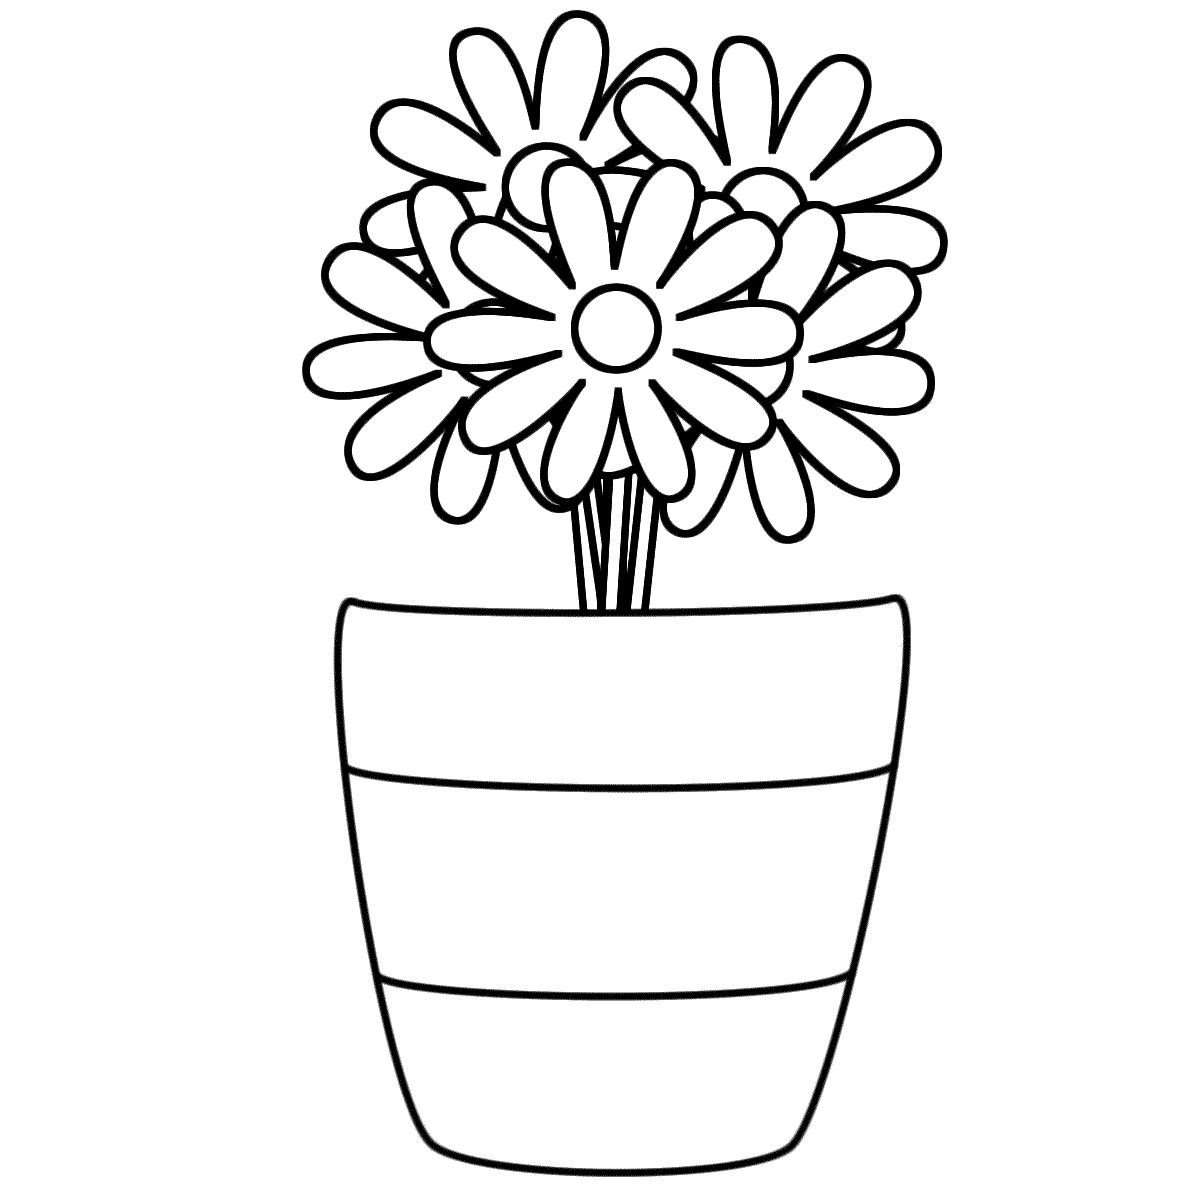 1200x1200 Coloring Pages Of Flowers In A Vase Vase Flower